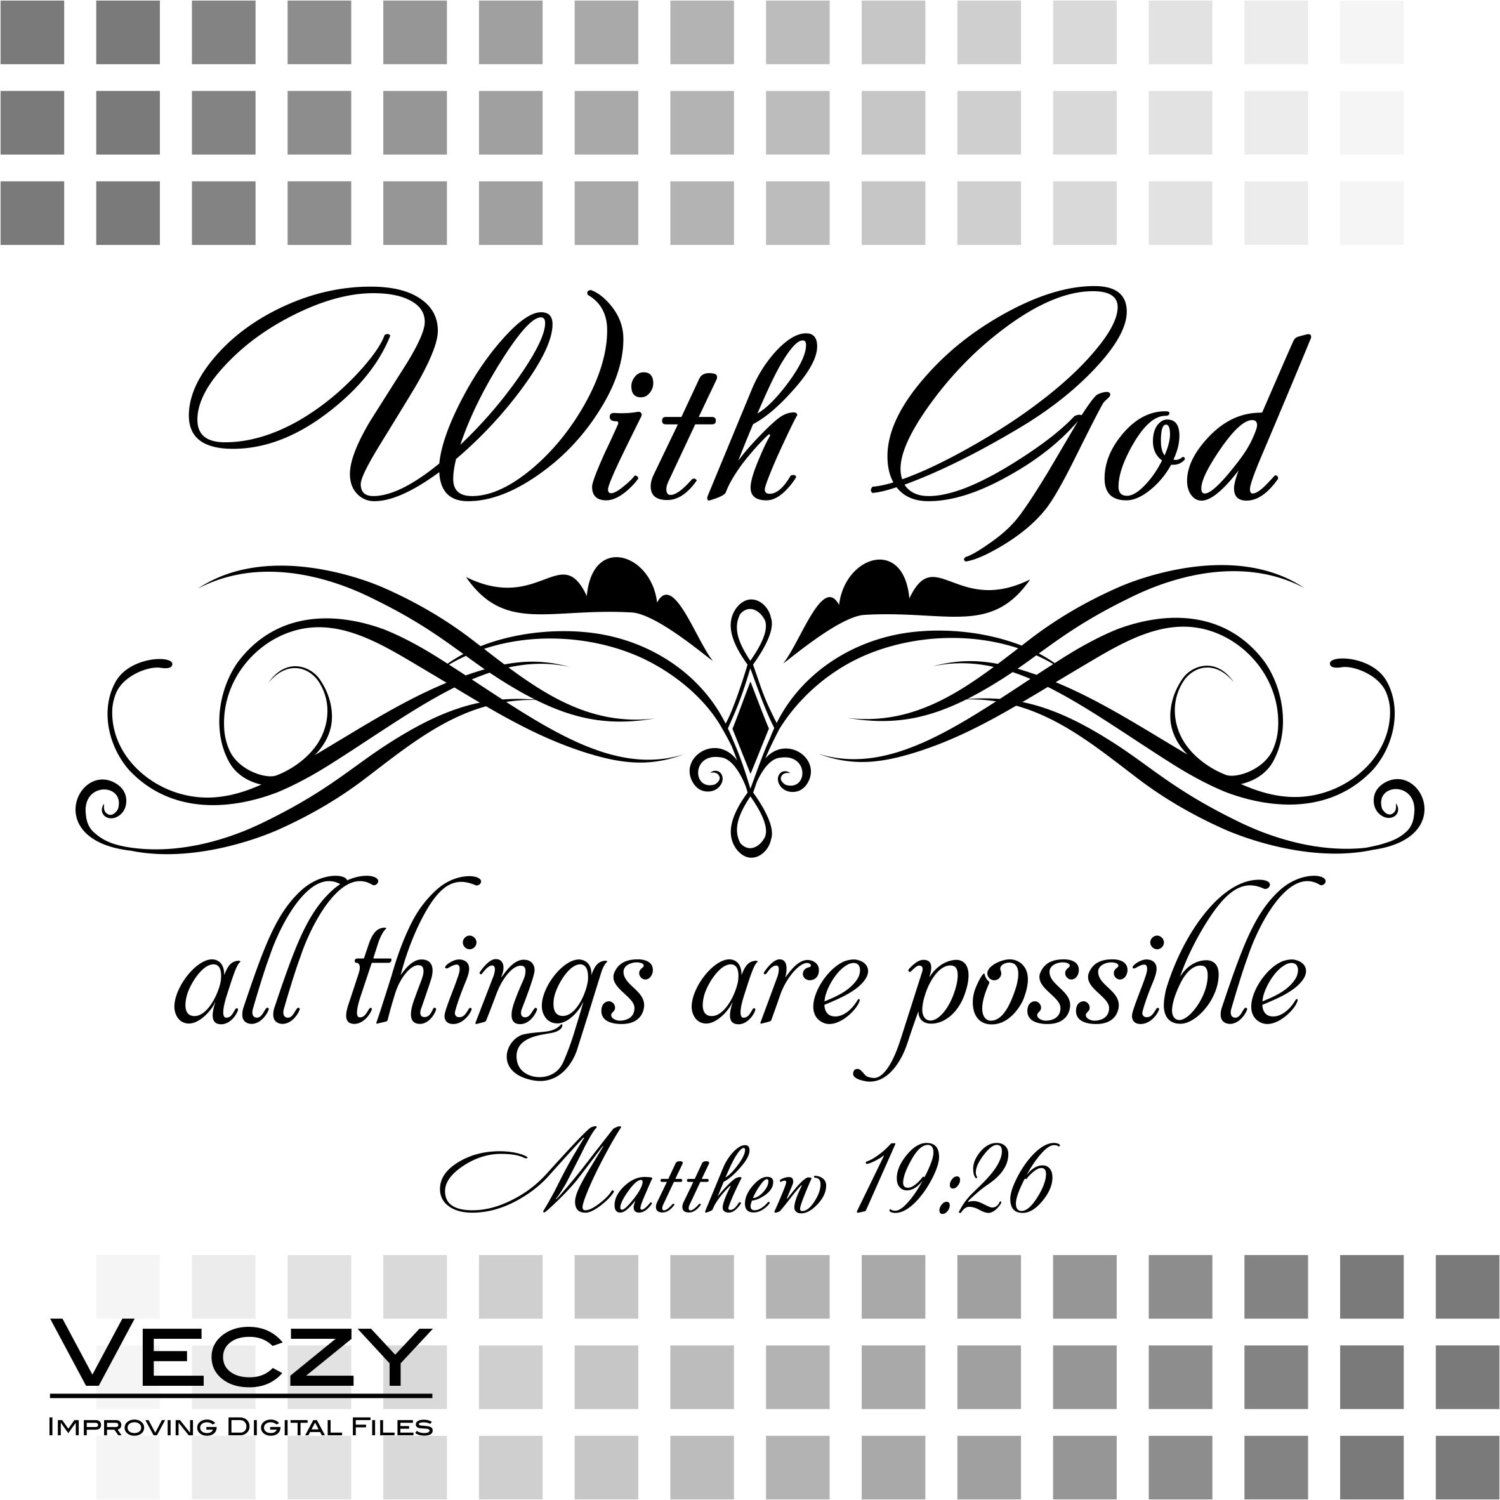 Svg File With God All Things Are Possible Matthew 19 26